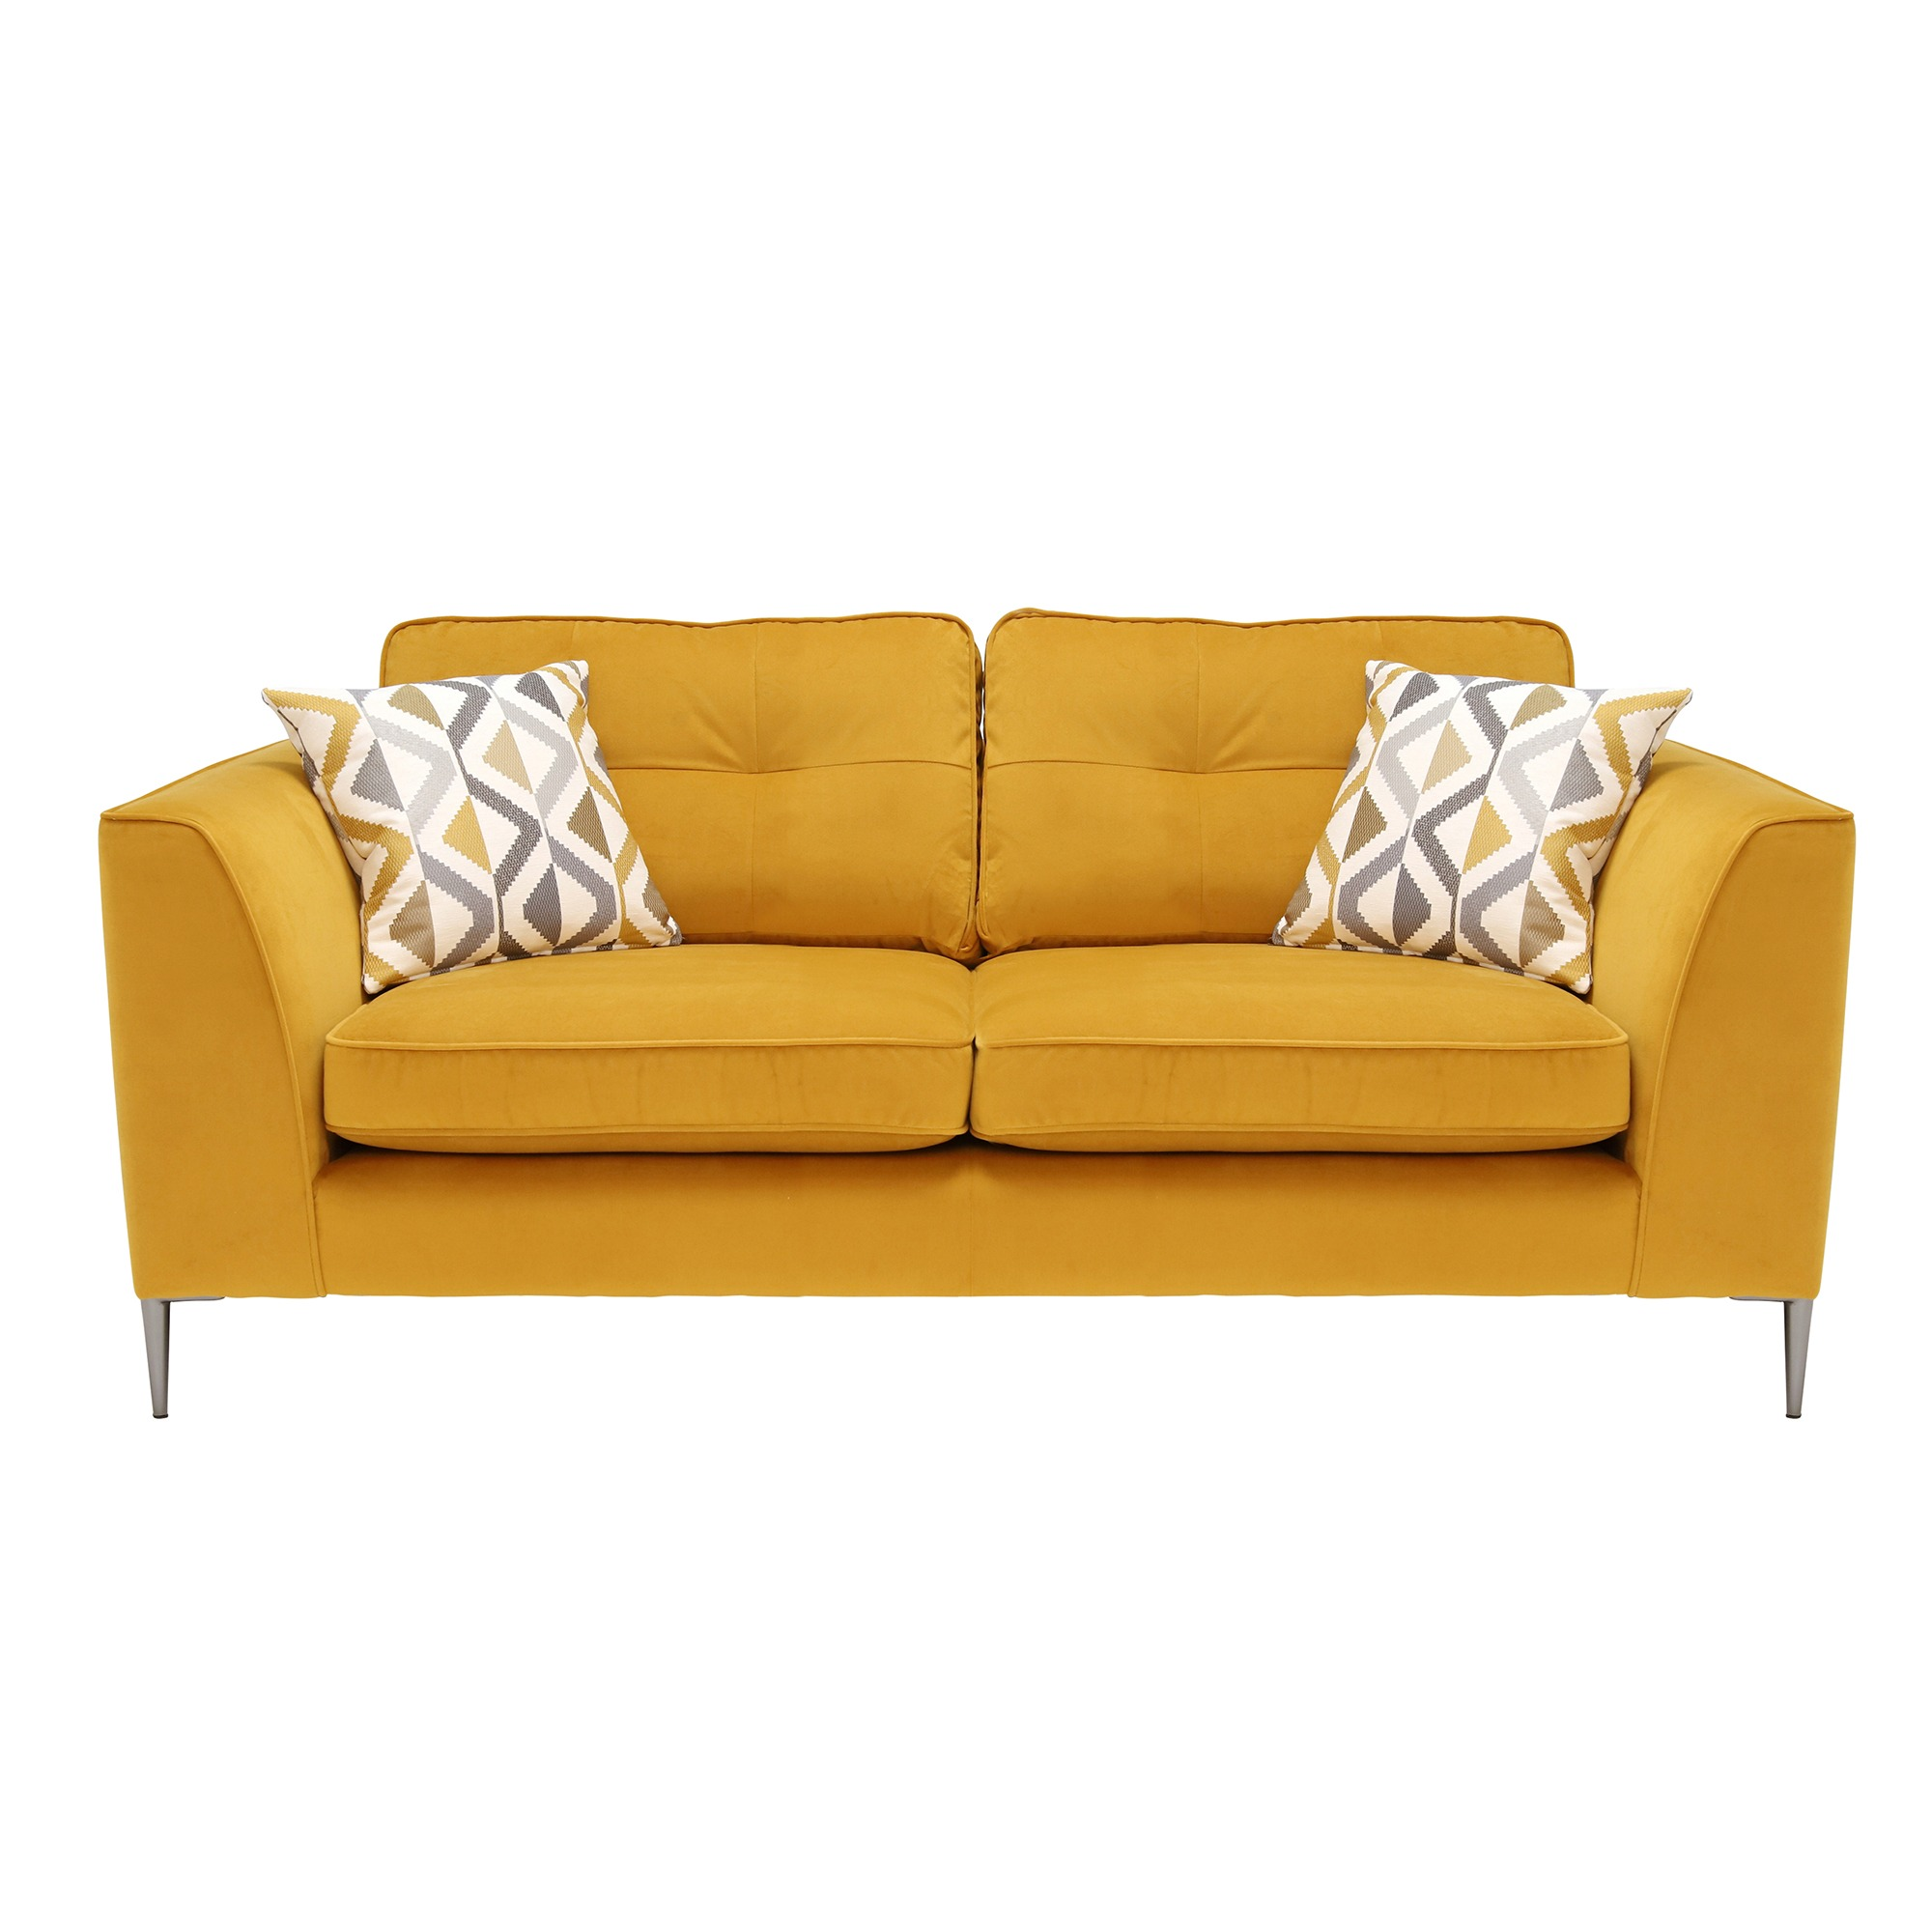 GOTHENBURG MEDIUM SOFA